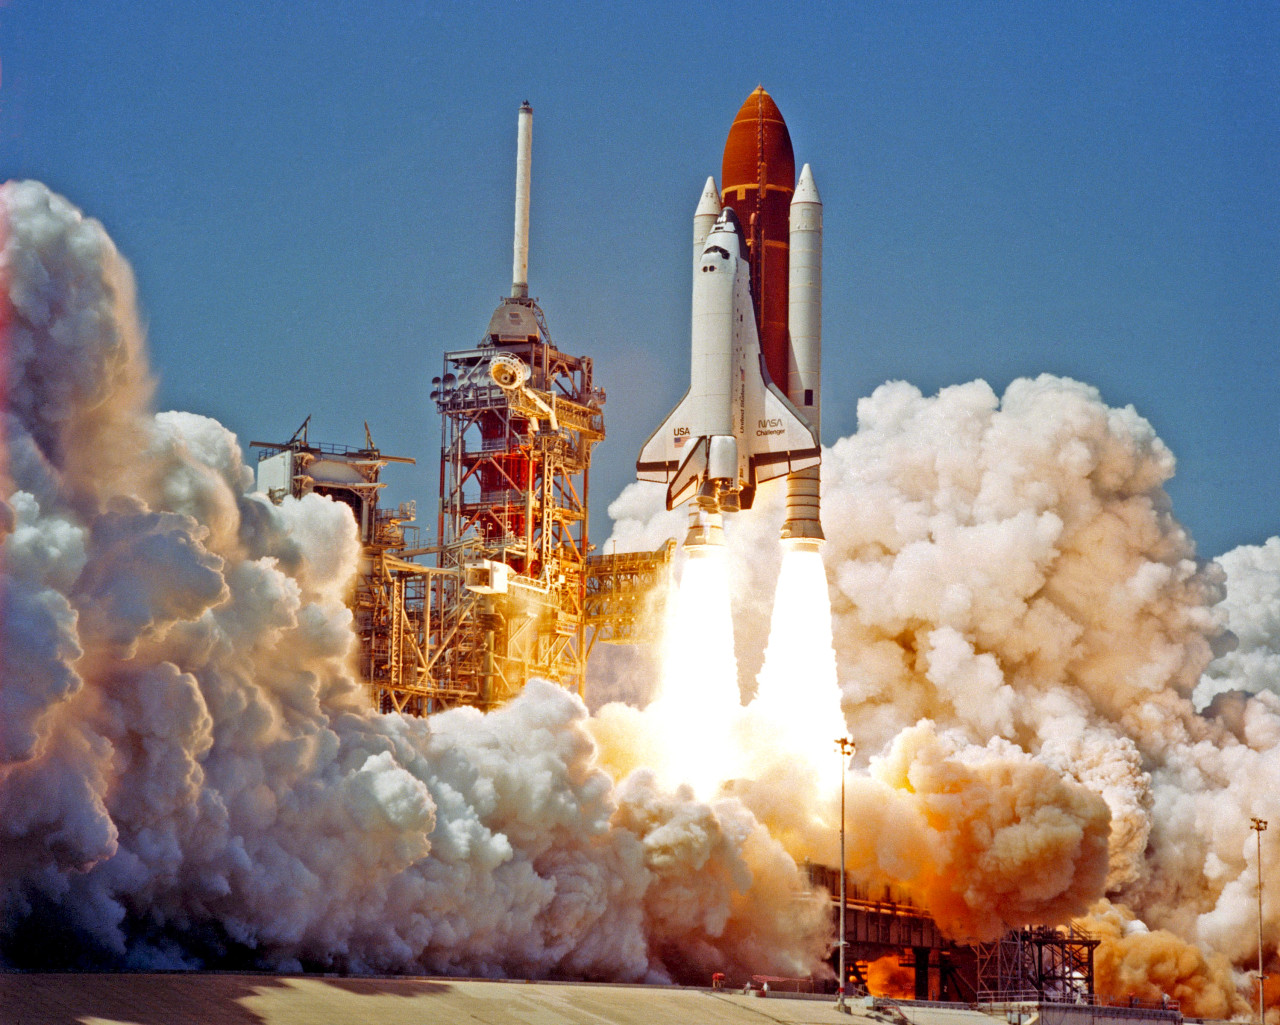 challenger space shuttle the untold story summary - photo #16